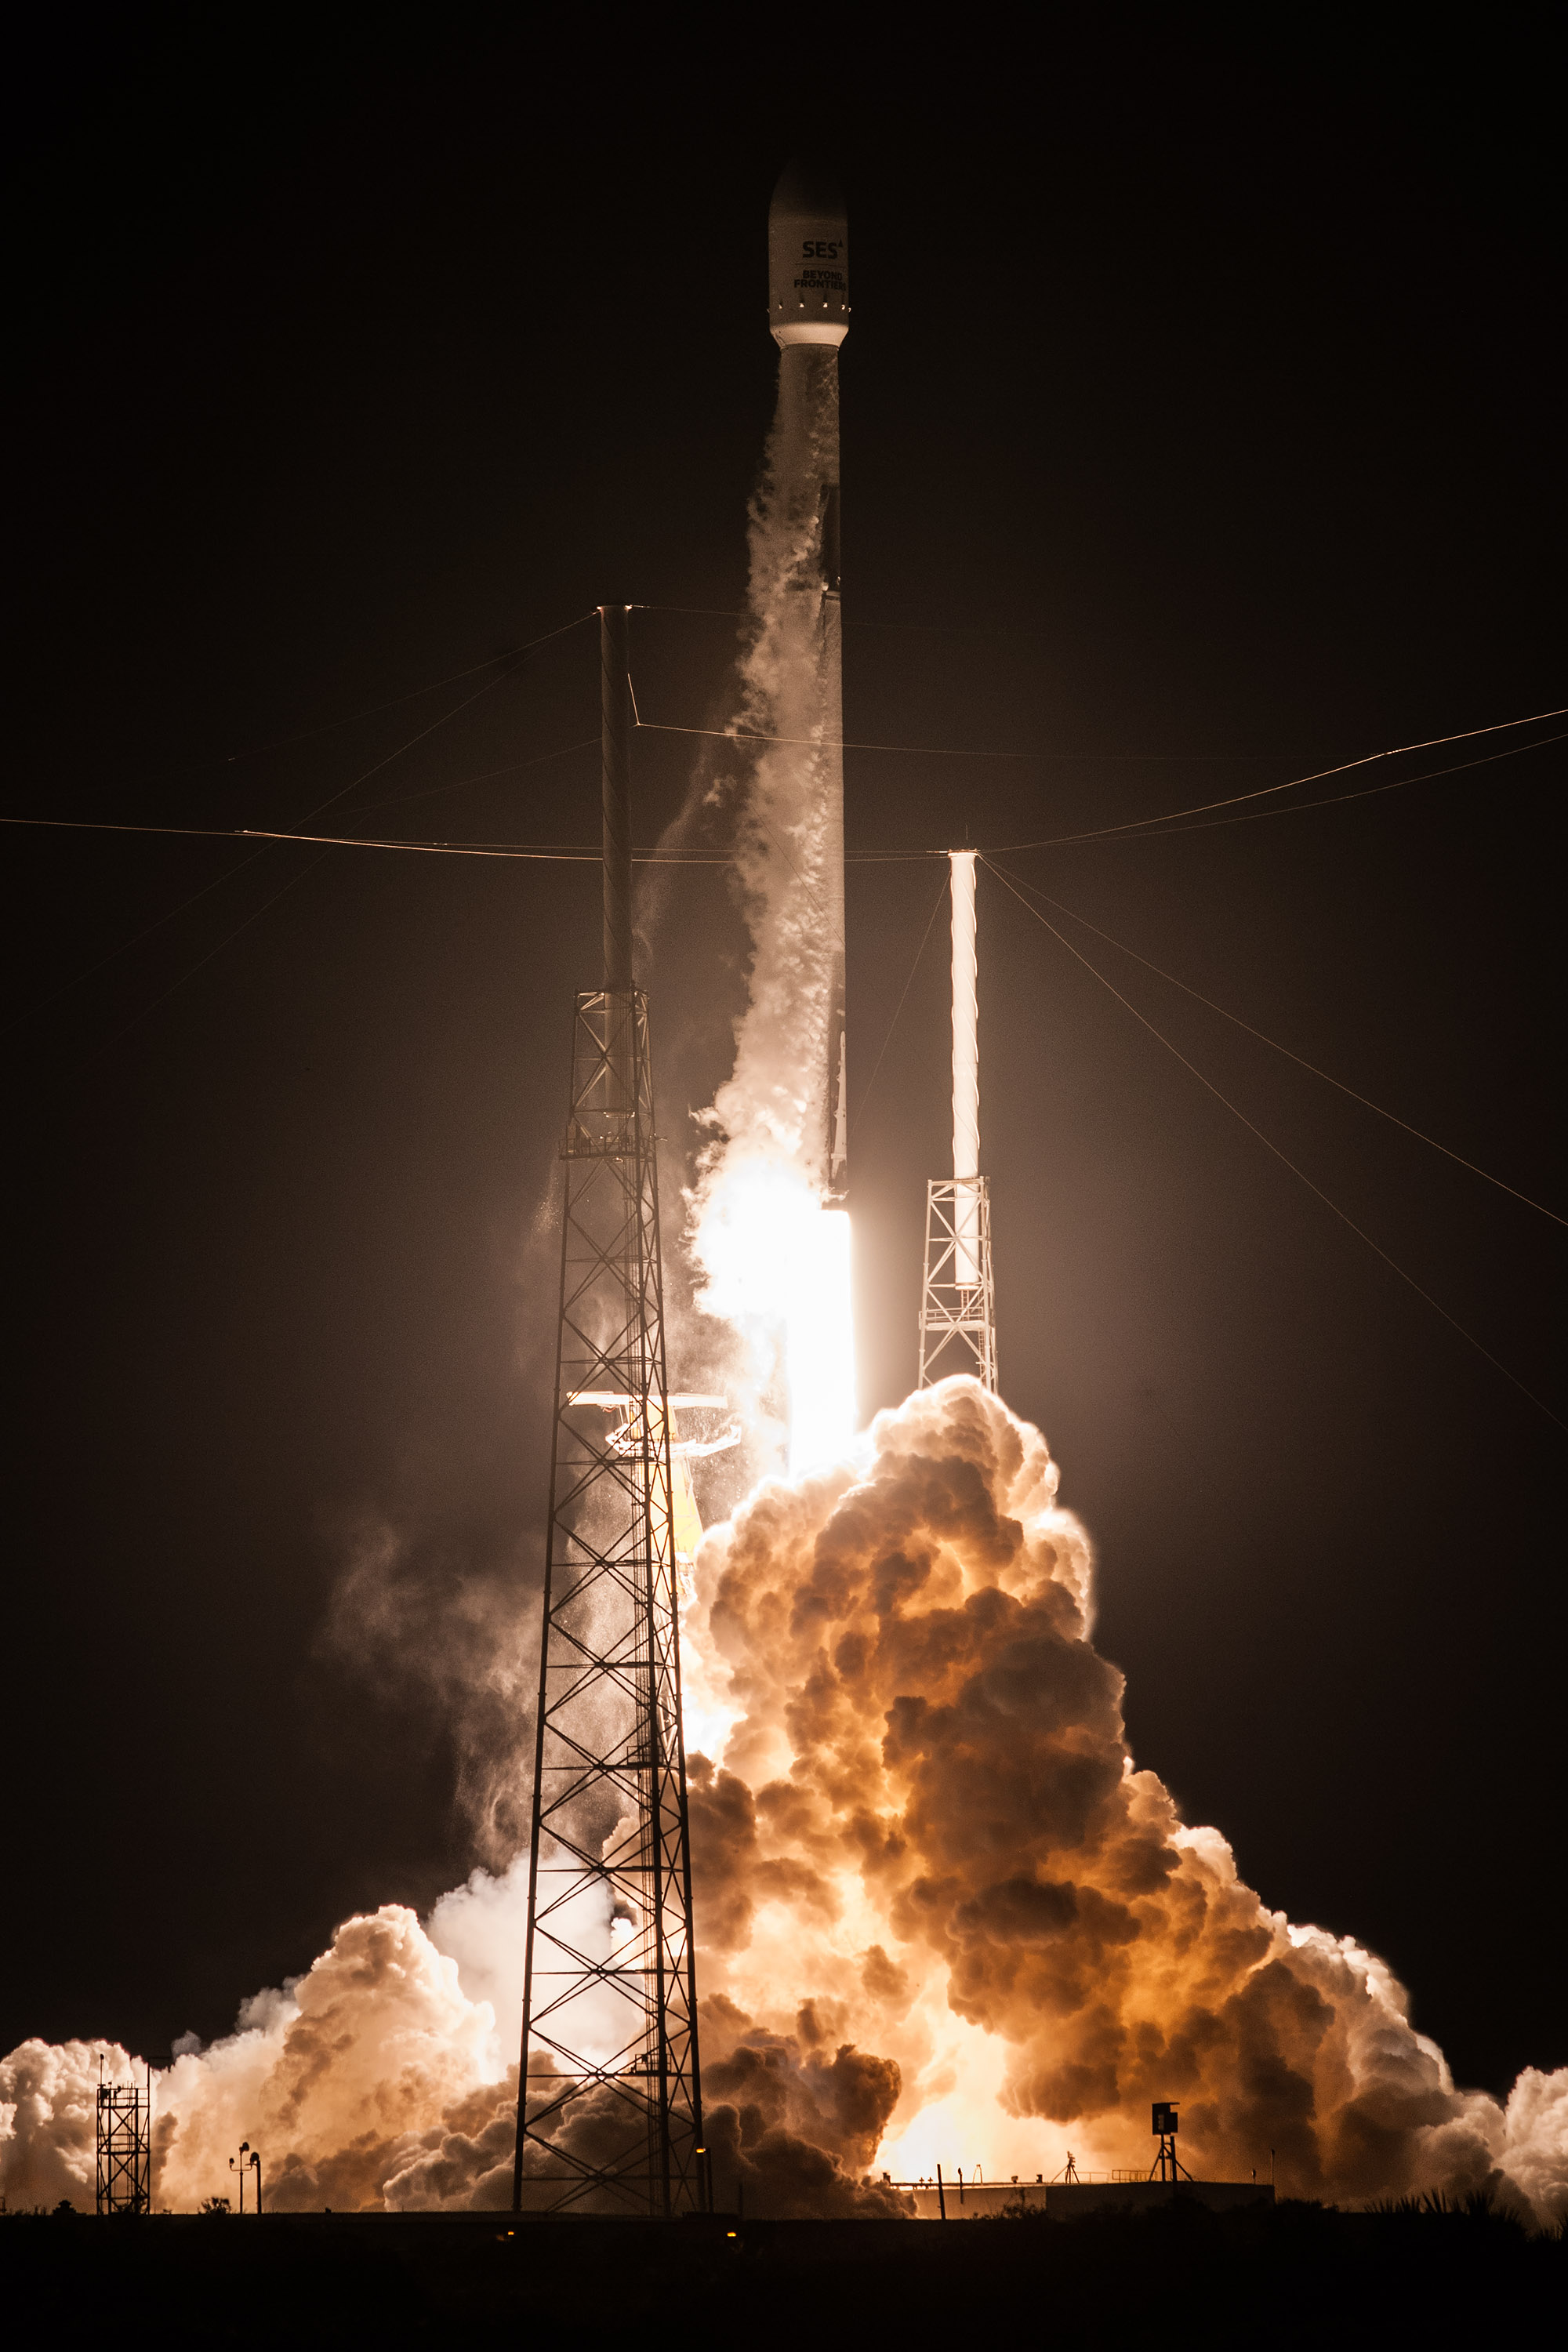 SES-12 liftoff (SpaceX) 2